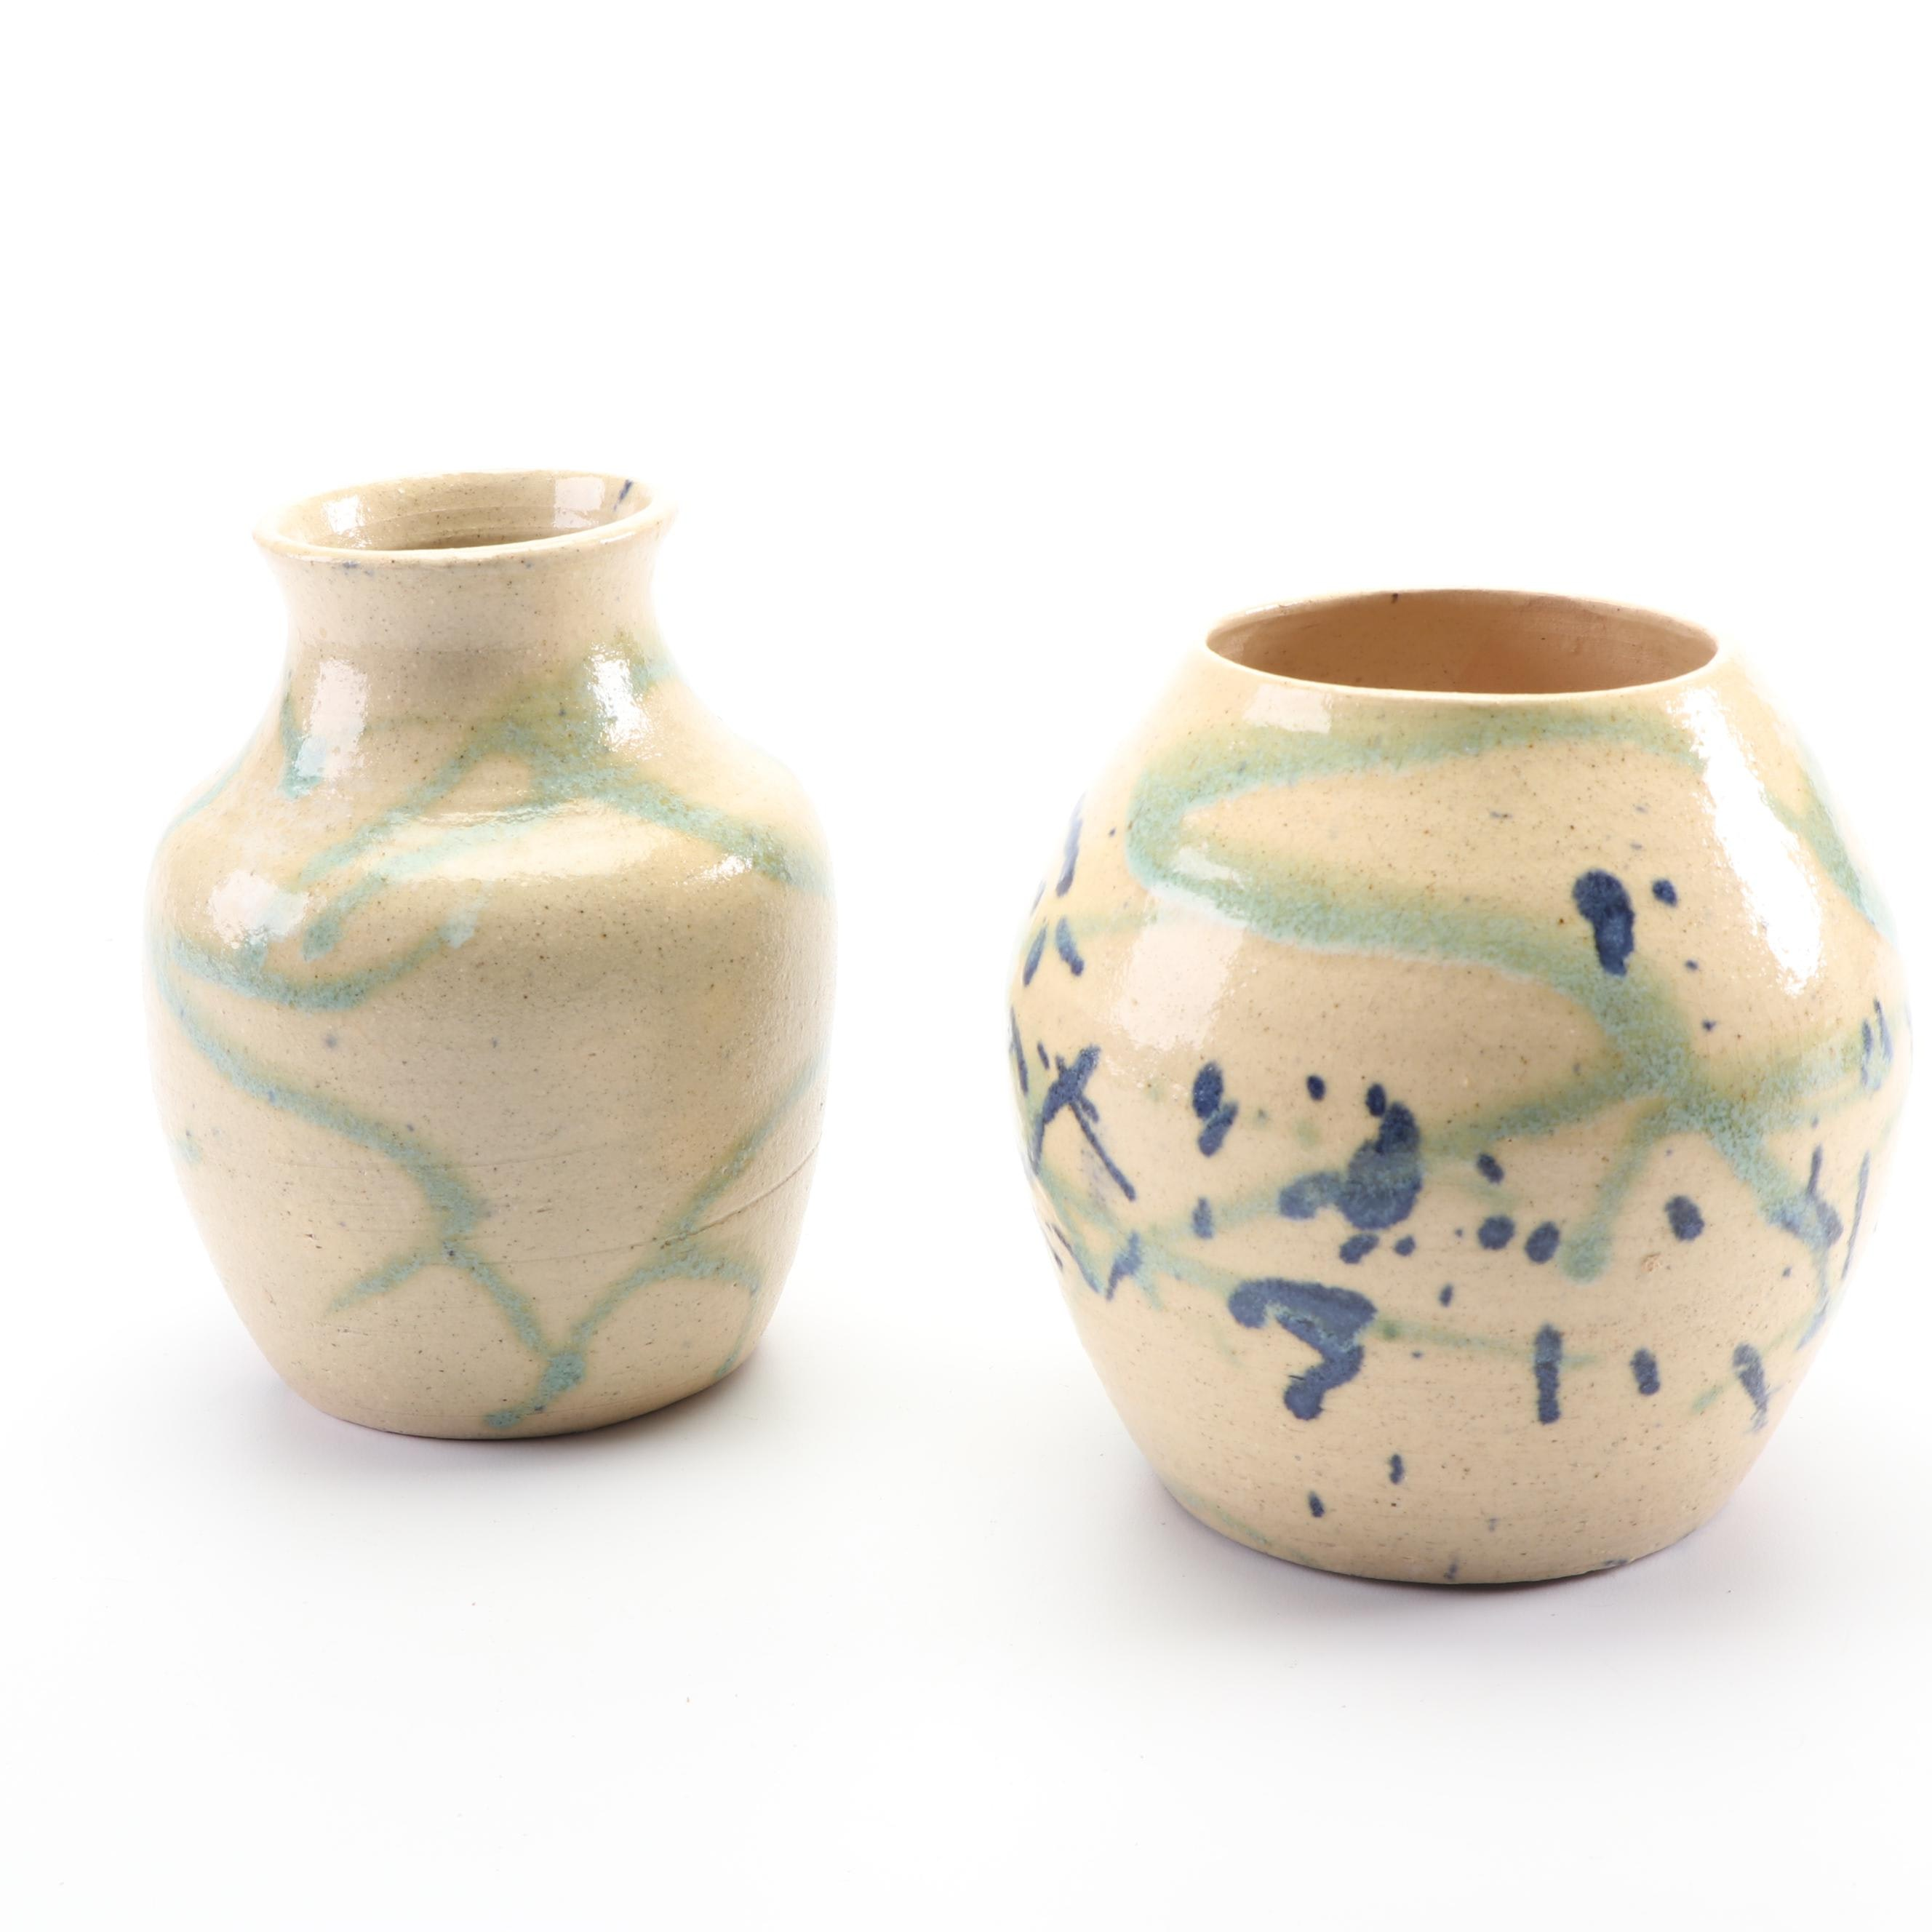 Jen Lowy Signed Hand-Thrown Stoneware Vases